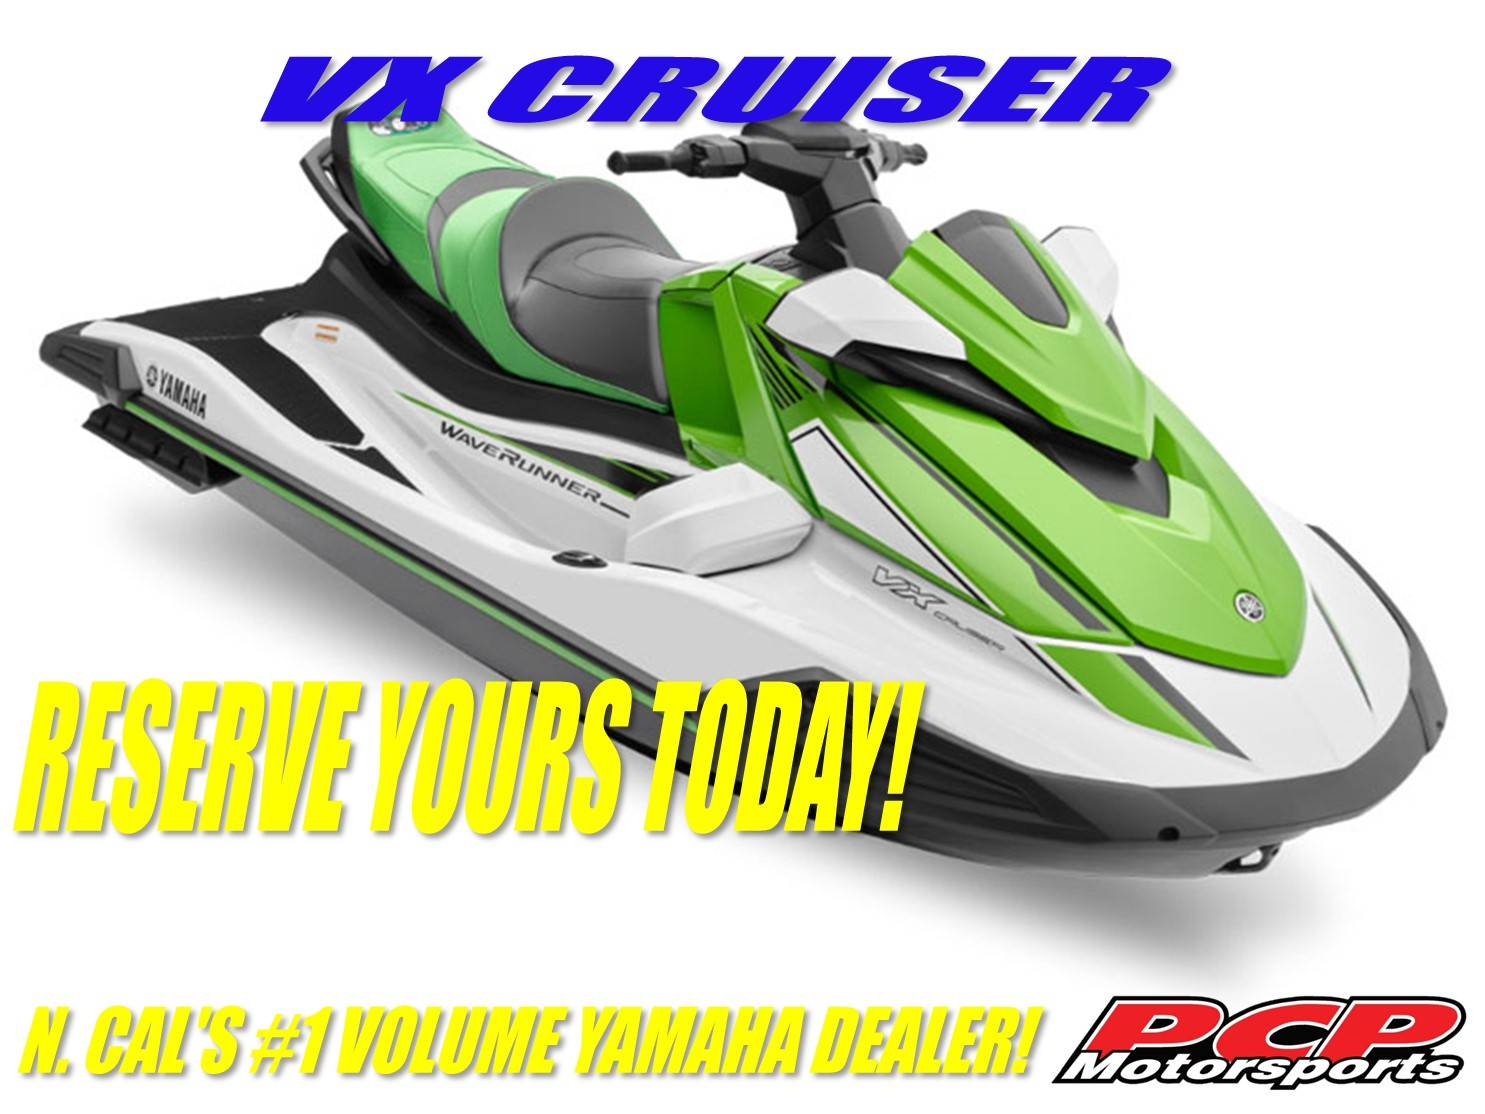 2021 Yamaha VX Cruiser in Sacramento, California - Photo 1